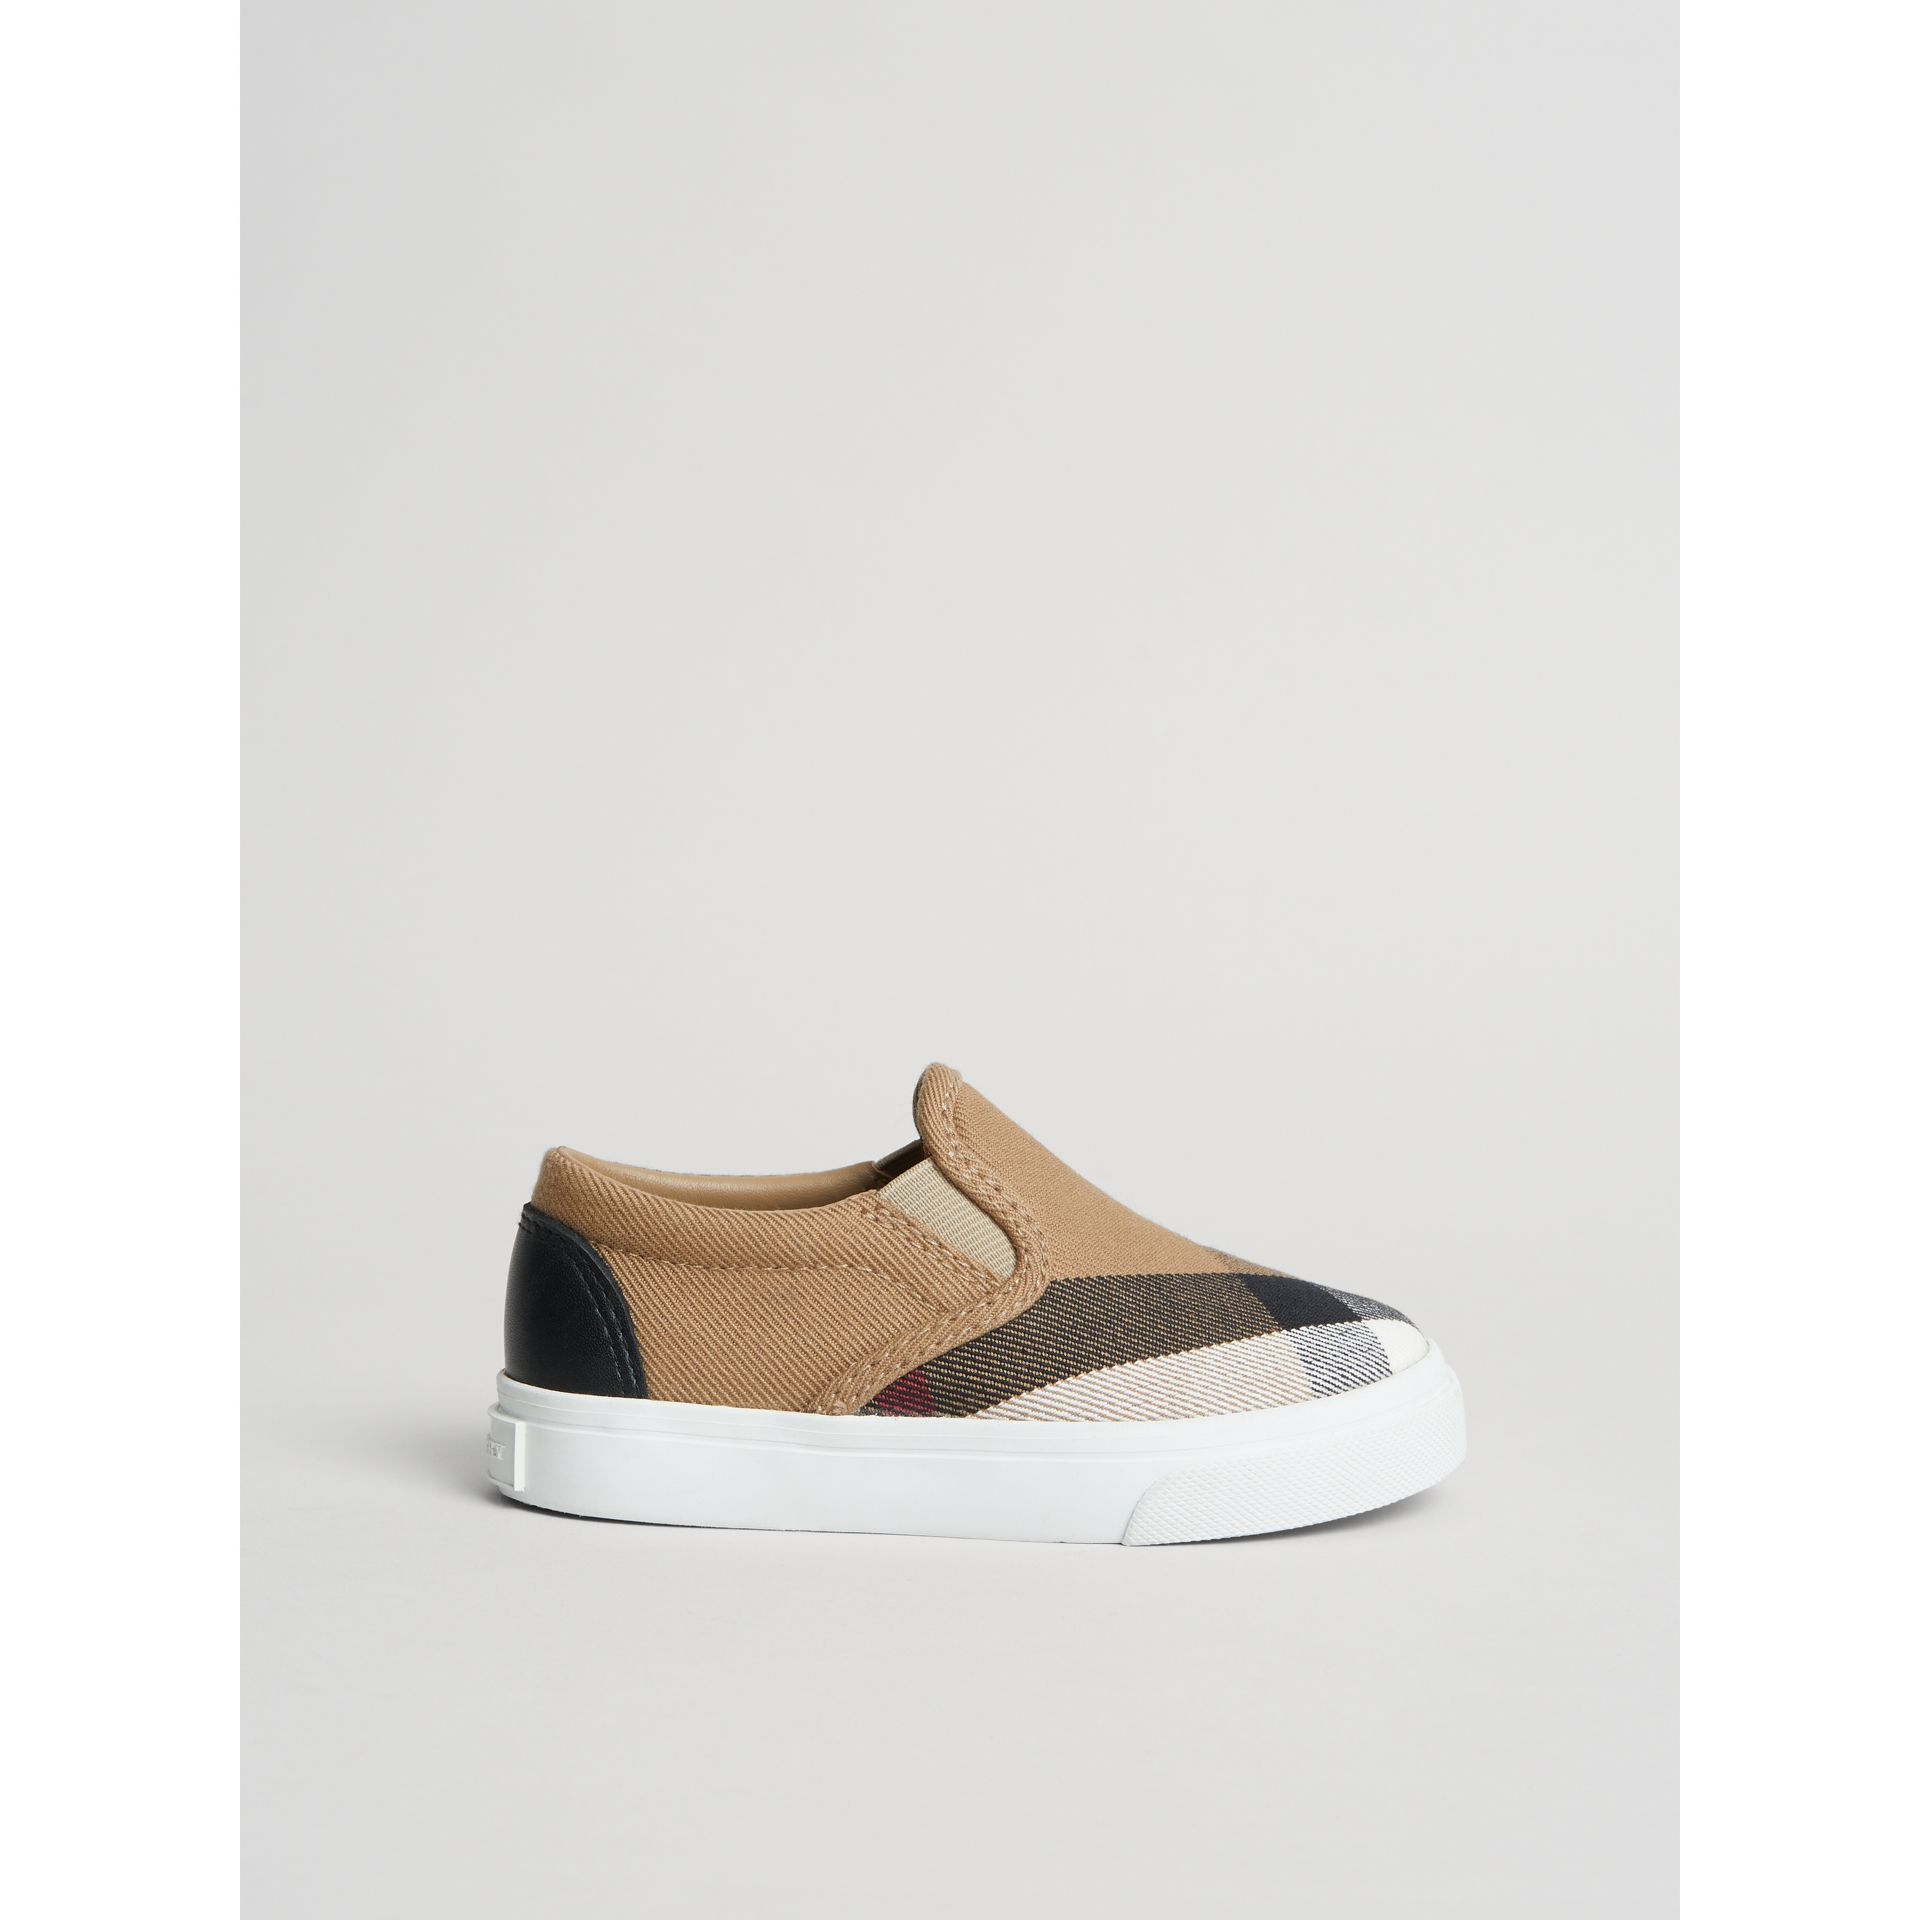 House Check and Leather Slip-on Sneakers in Classic/optic White | Burberry Australia - gallery image 3